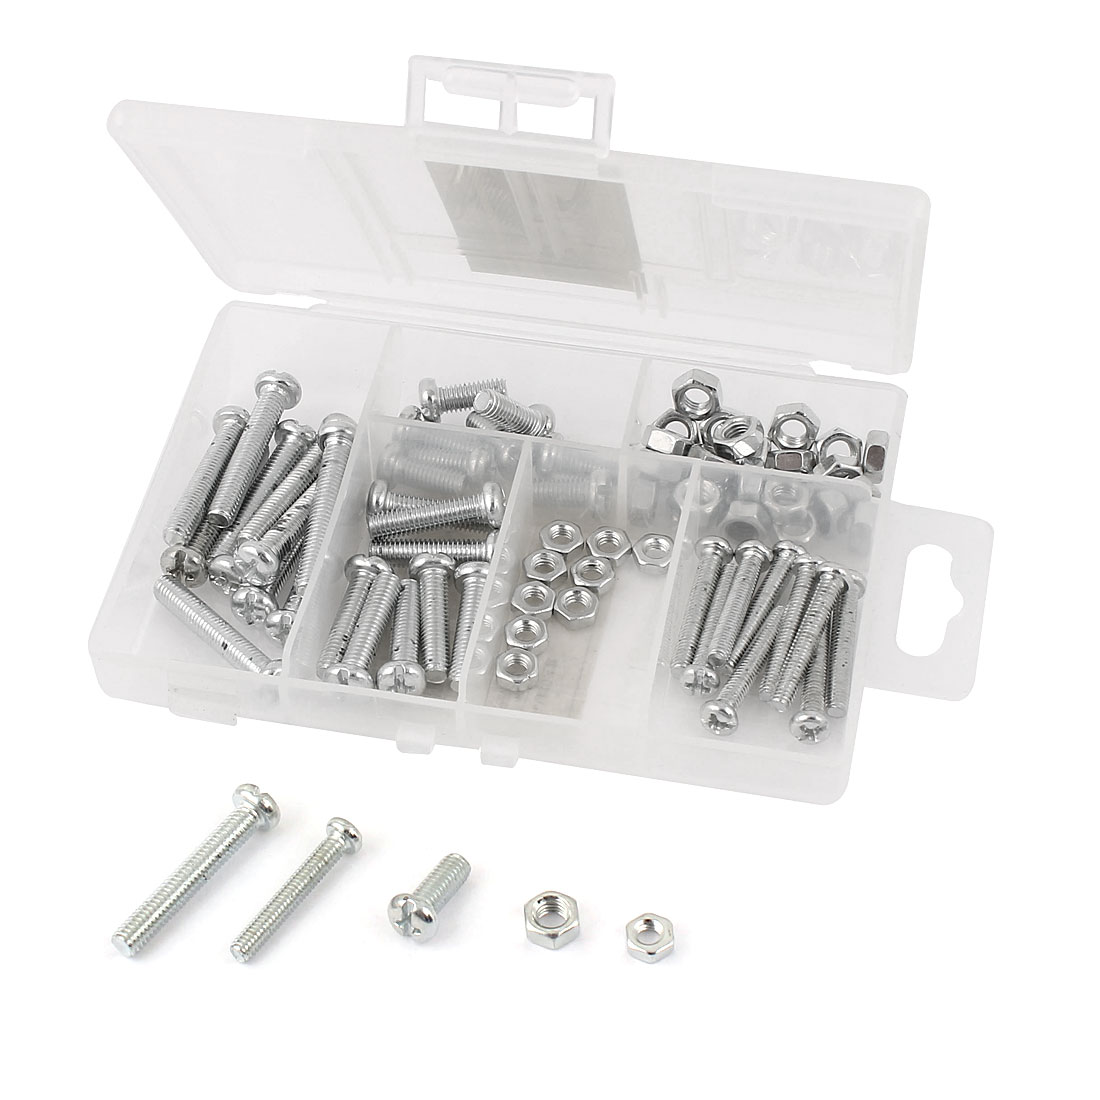 77 in 1 M4 M5 Silver Tone Metal Cross Oval Head Screw Bolt Nut Set Kit Fasteners w Case